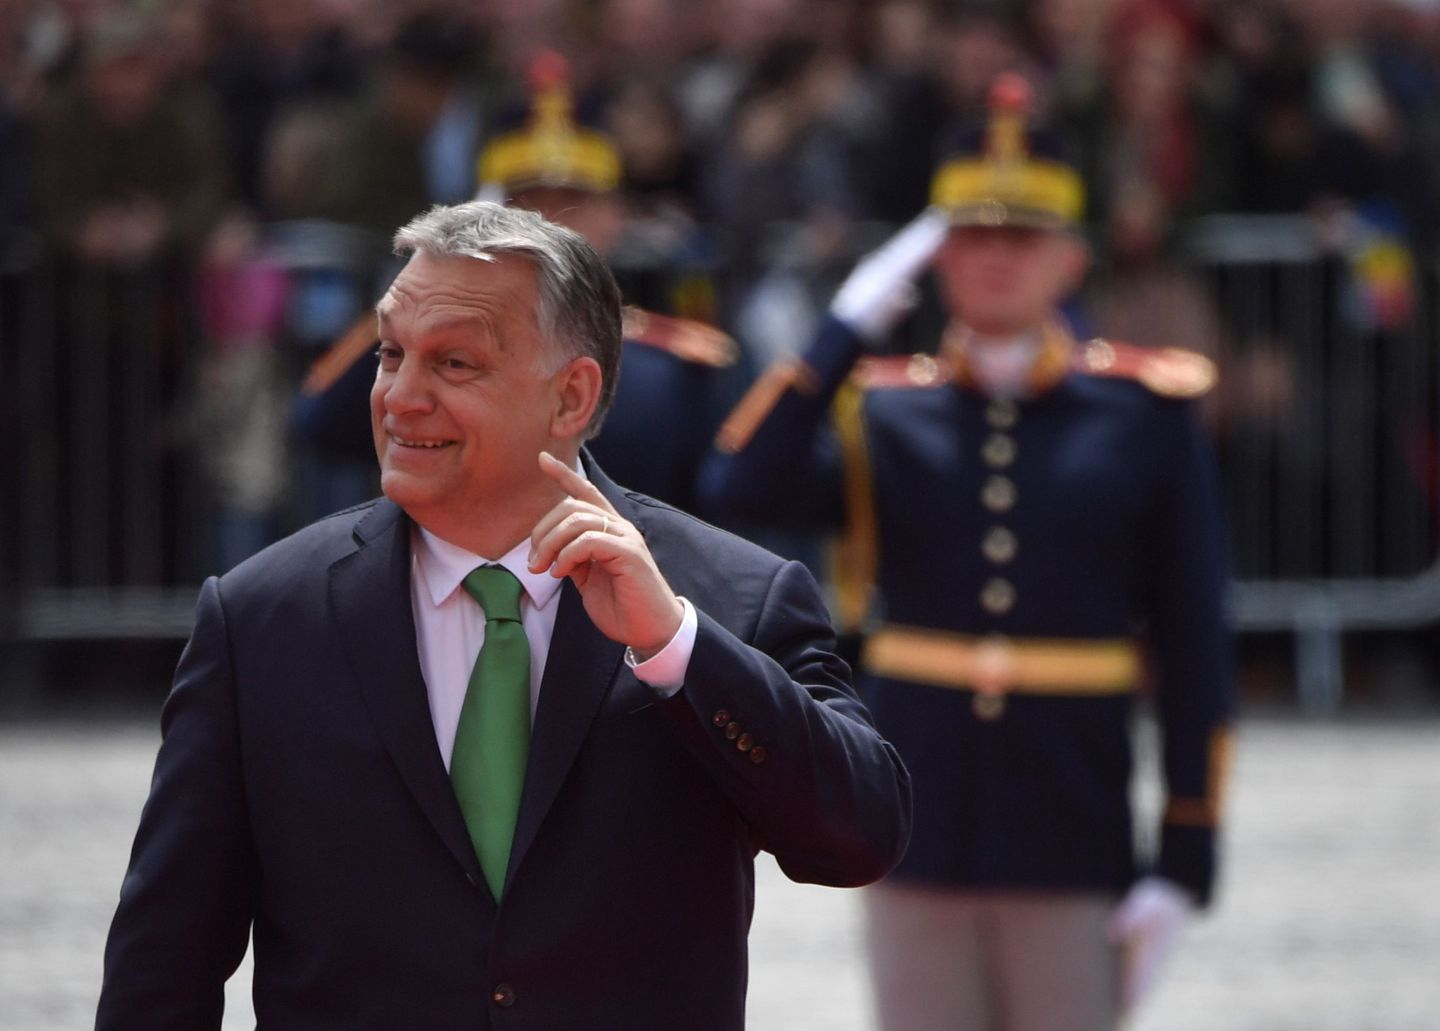 Trump praises Hungary's Orban for keeping country 'safe'